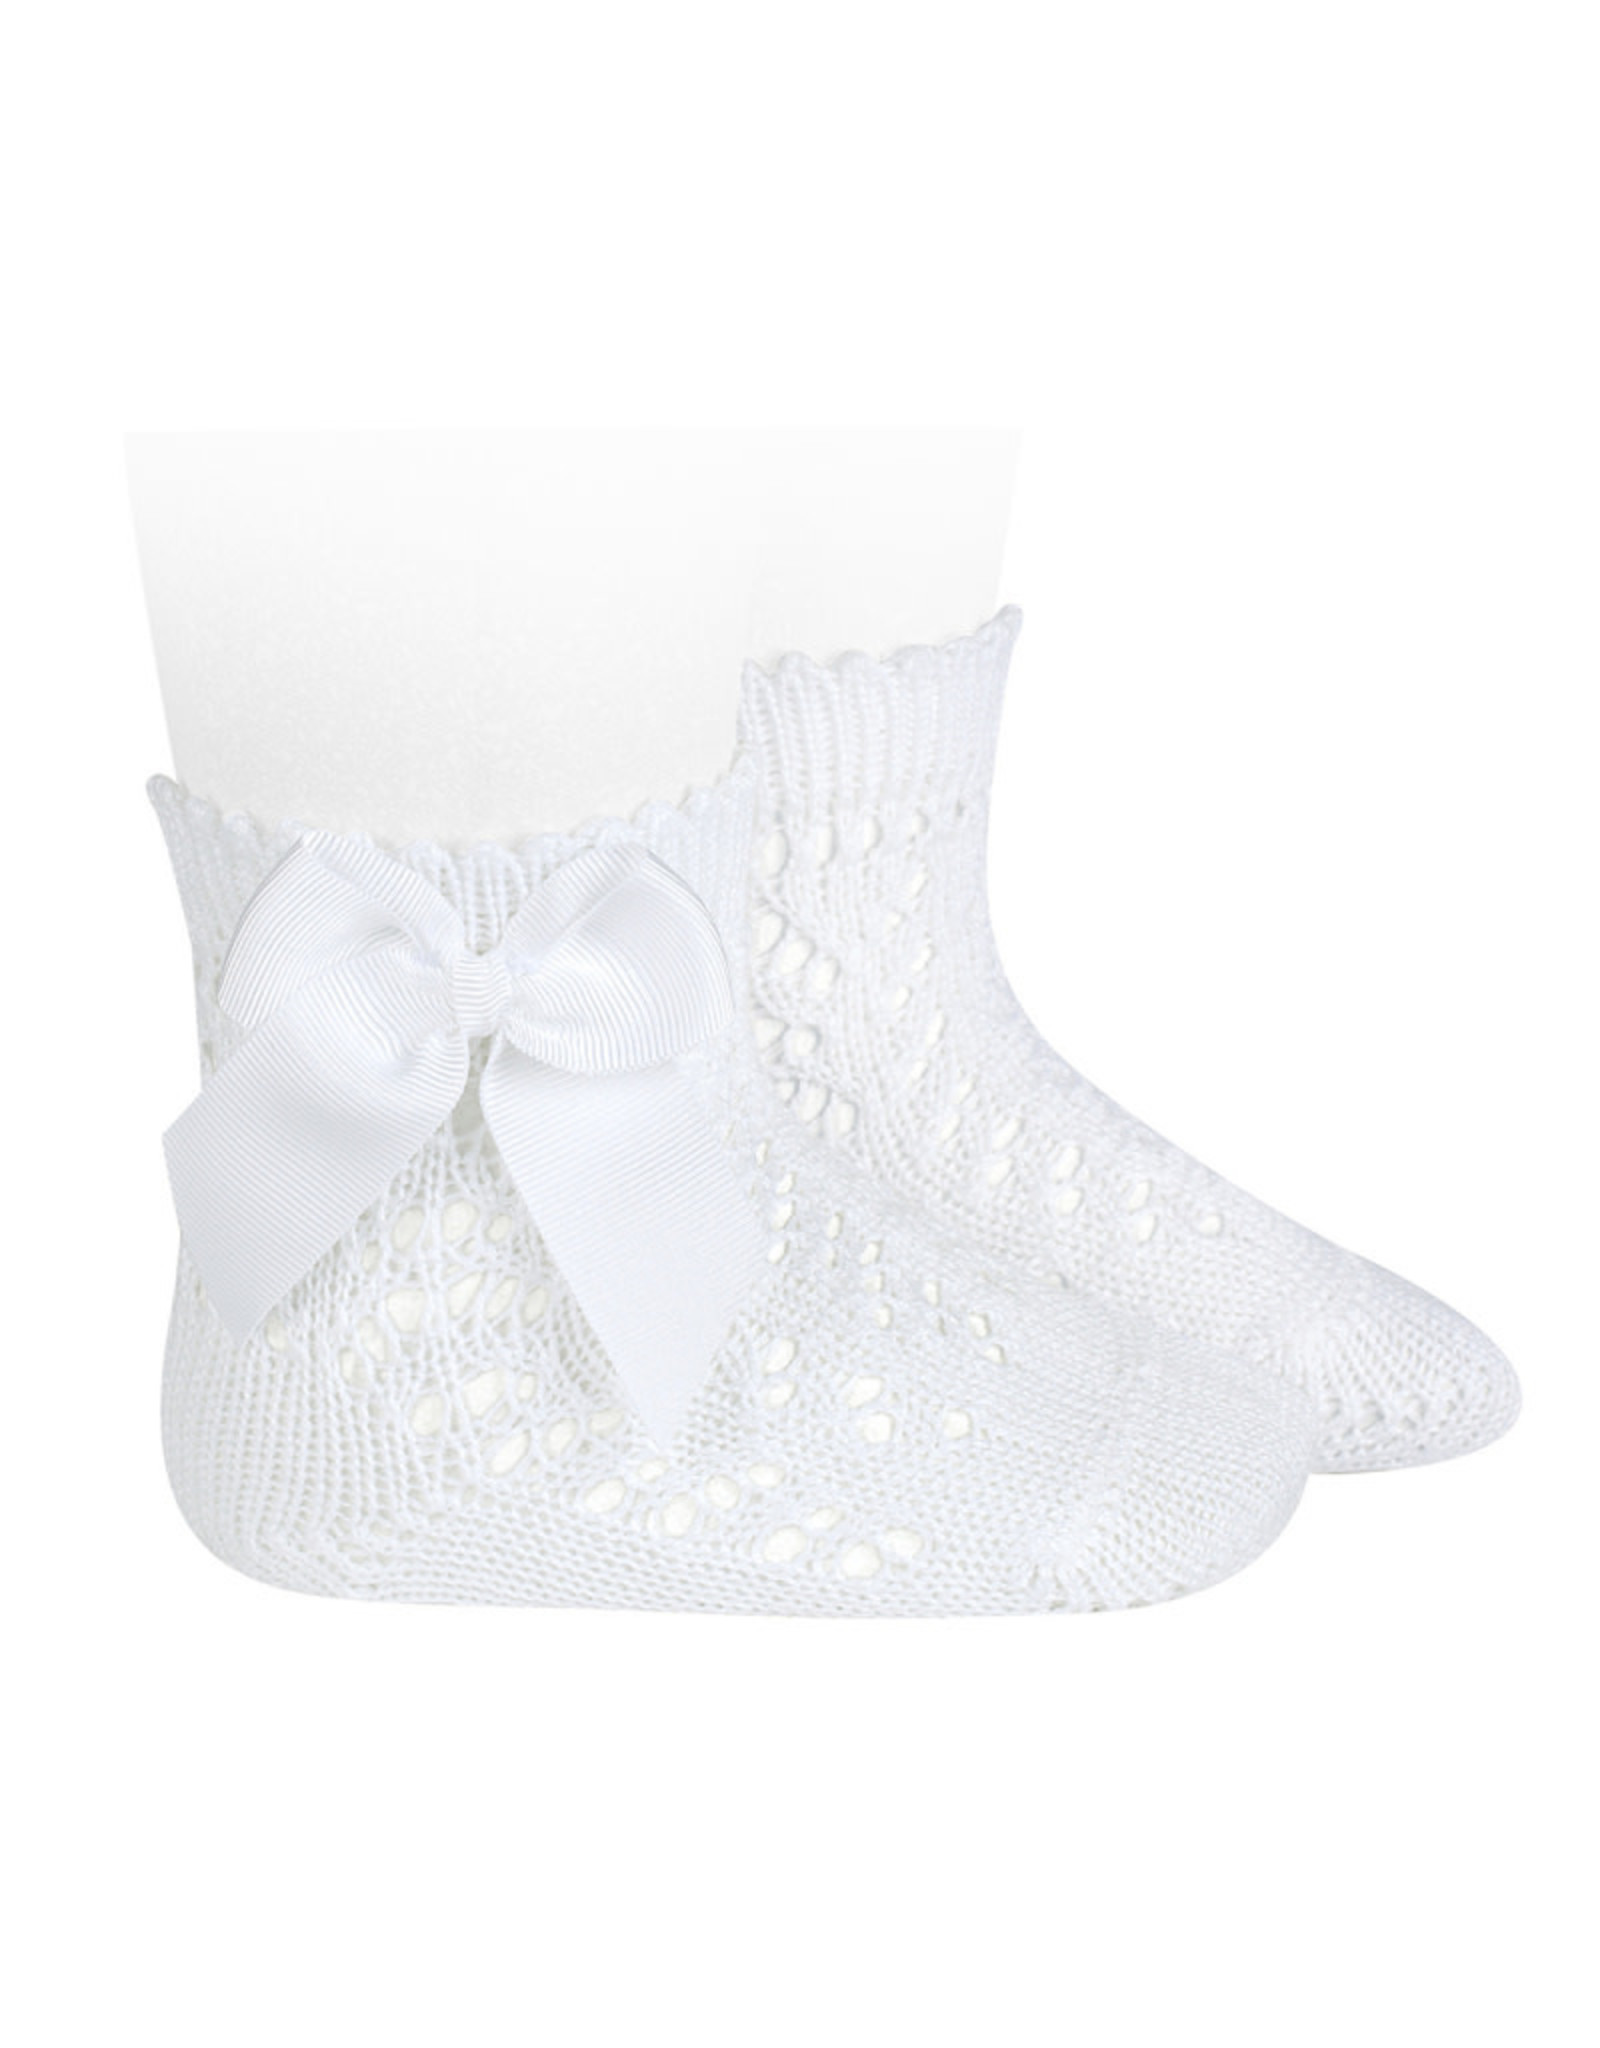 CONDOR White Openwork Short Socks with Bow